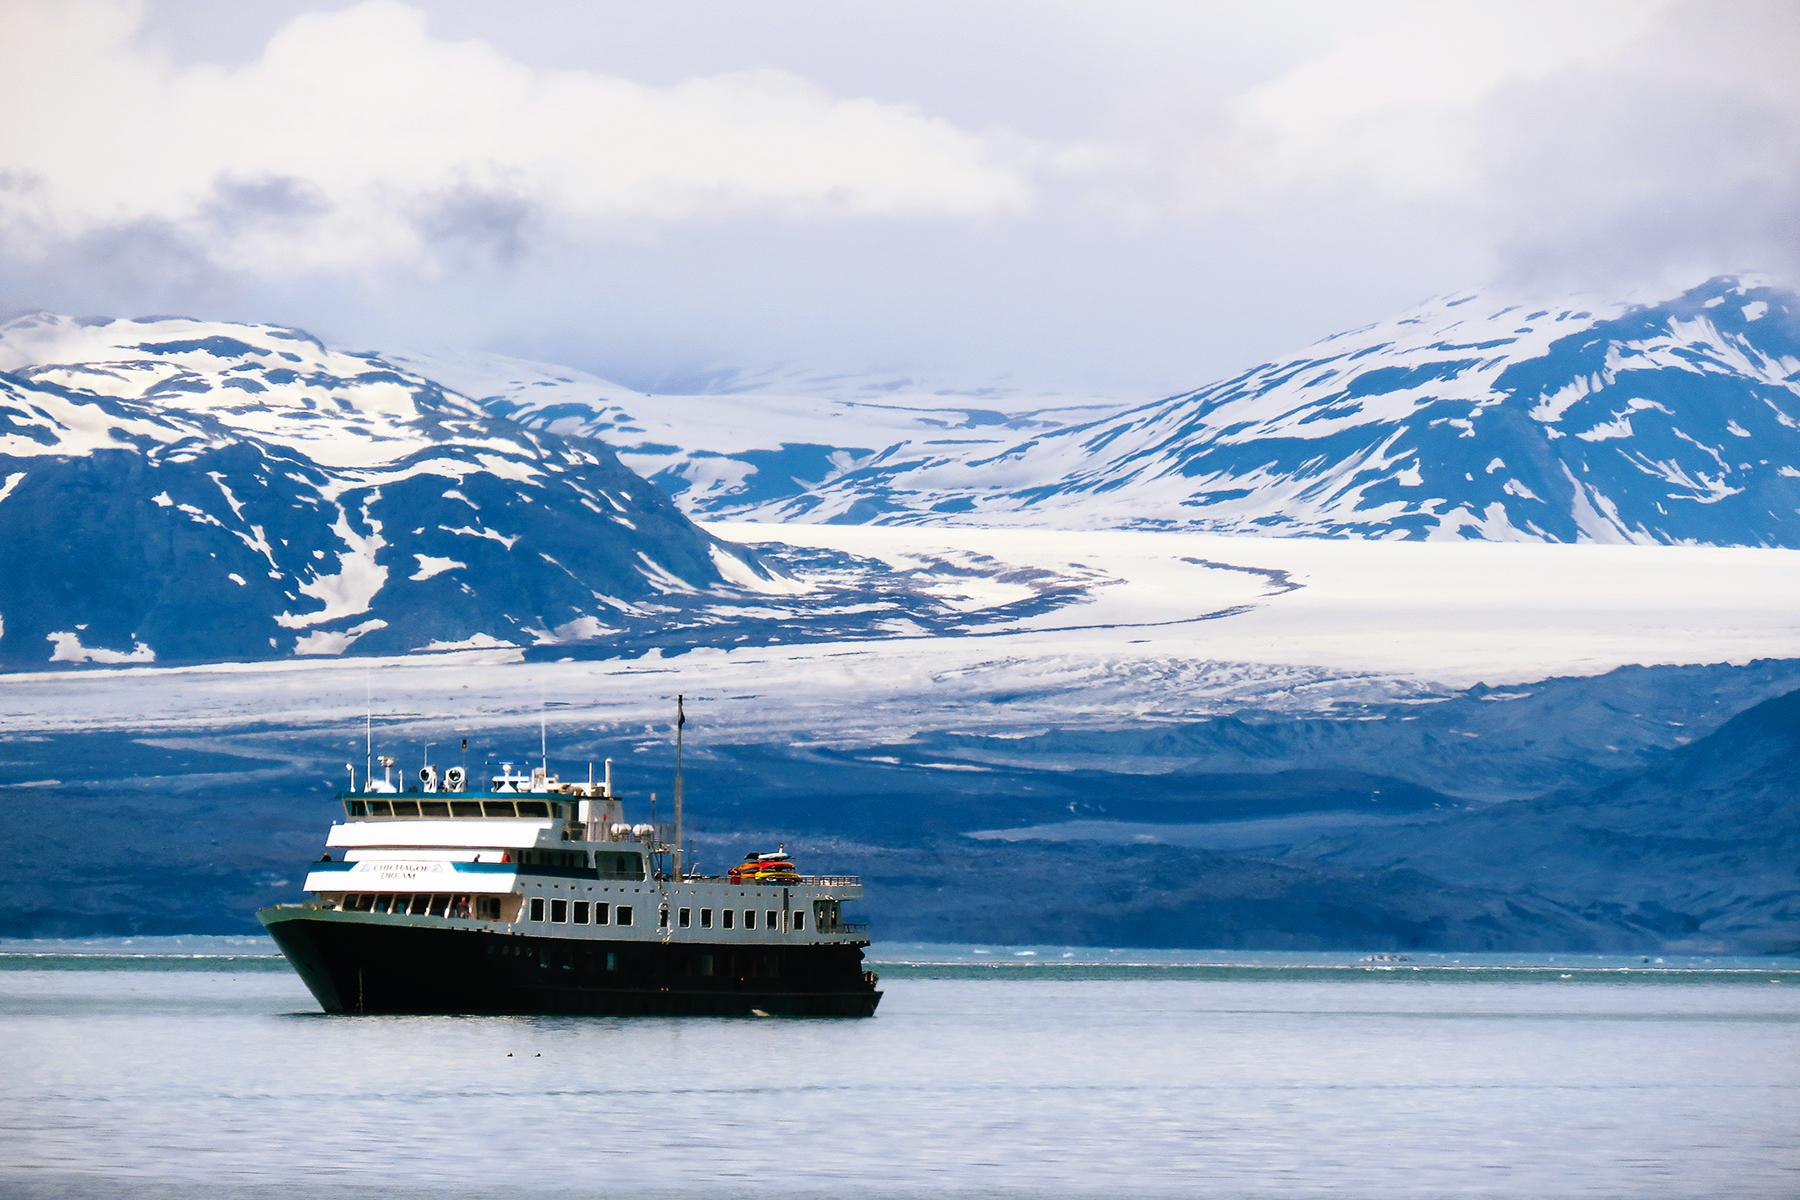 Why You Should Take an Alaskan Cruise on a Small Ship